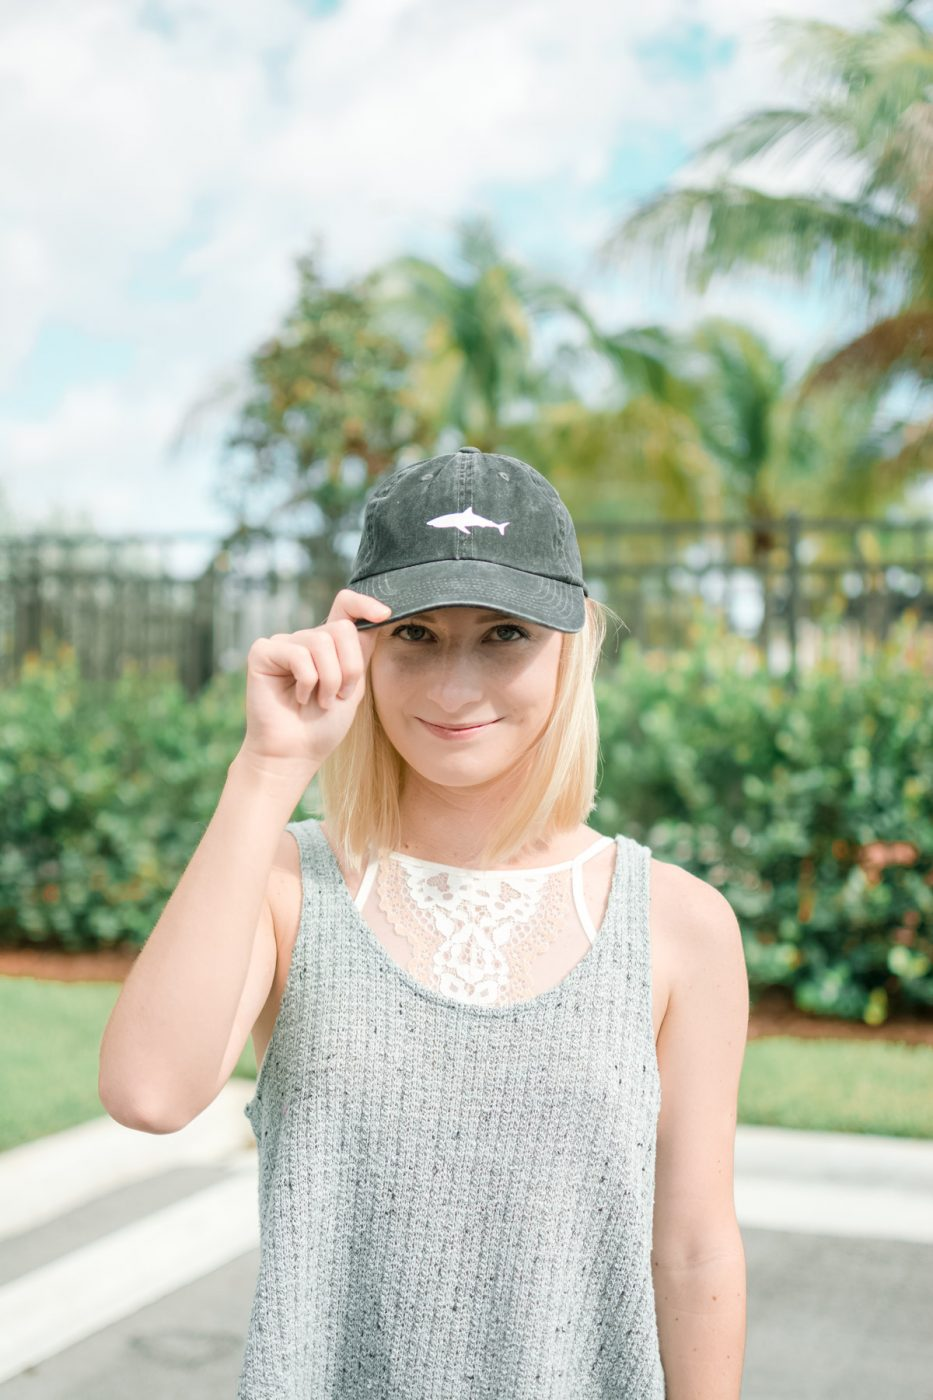 DIY Baseball Cap Shark Decal by Jenny Bess of Sweet Teal